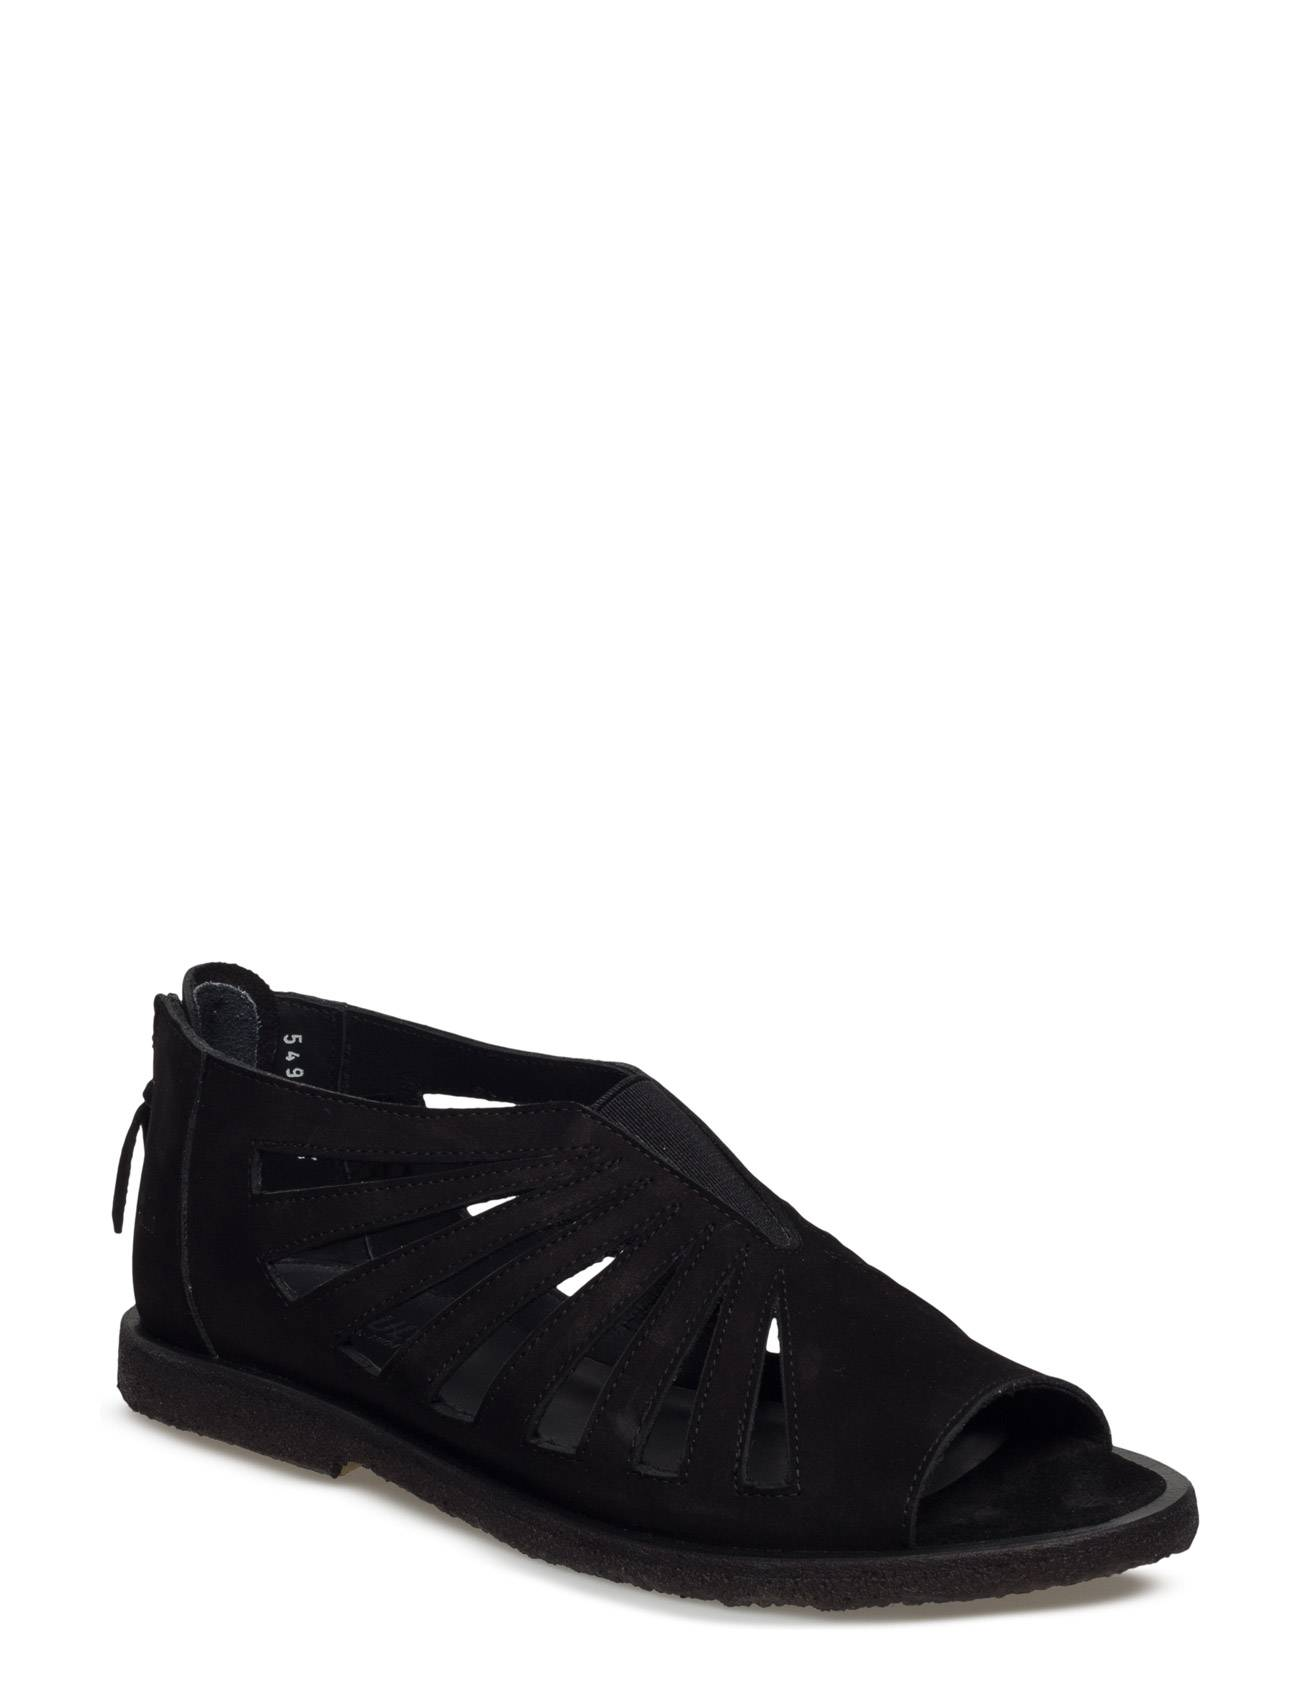 ANGULUS Sandals With Holes, Elastic And Zipper